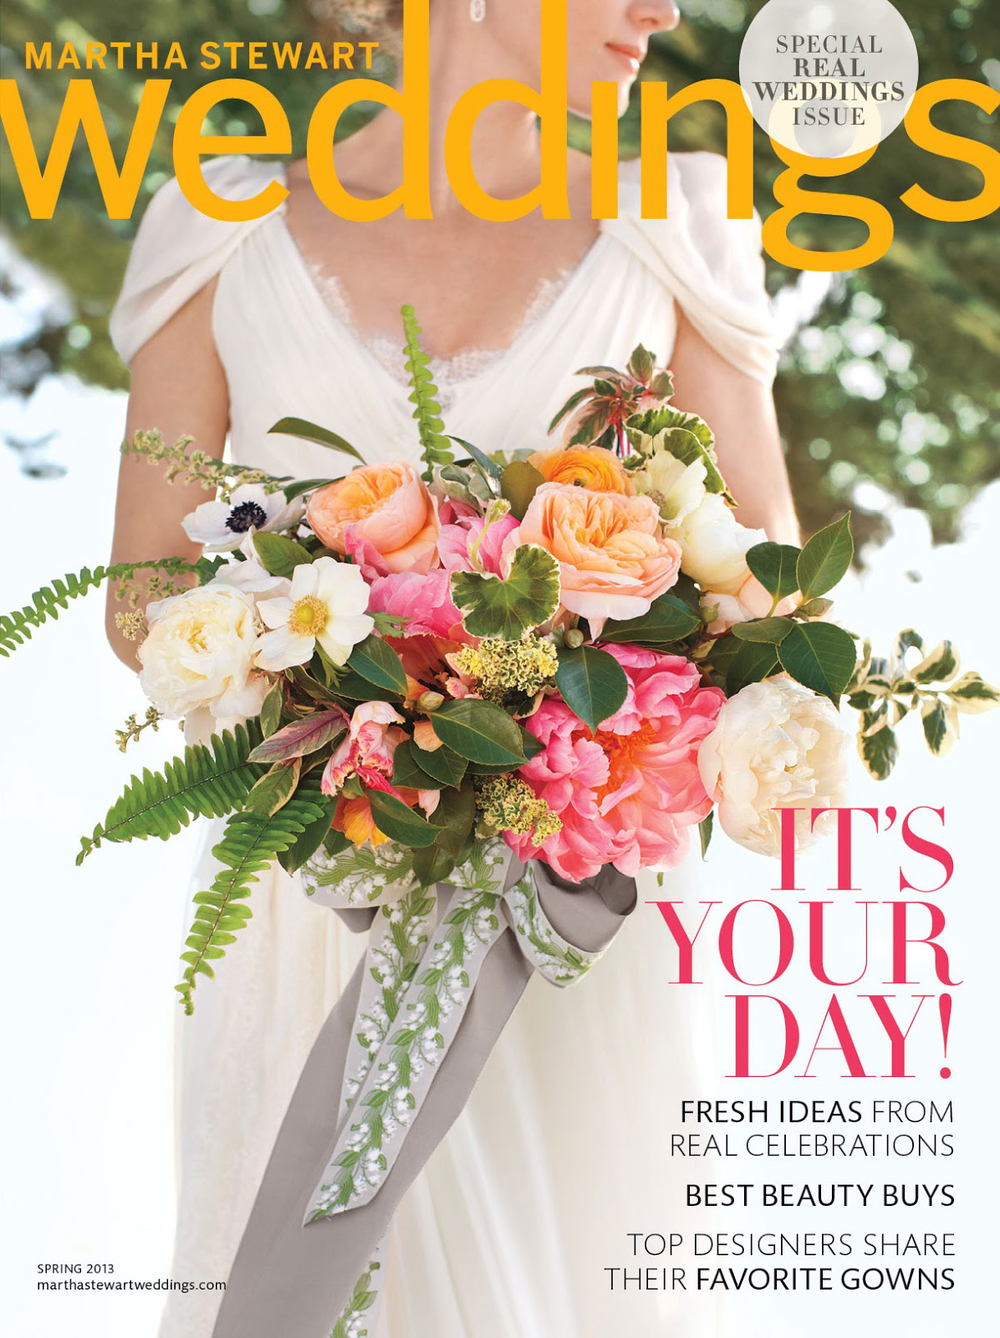 Martha-Stewart-Weddings-Real-Weddings-Special-Issue-Spring-2013-Cover.jpg